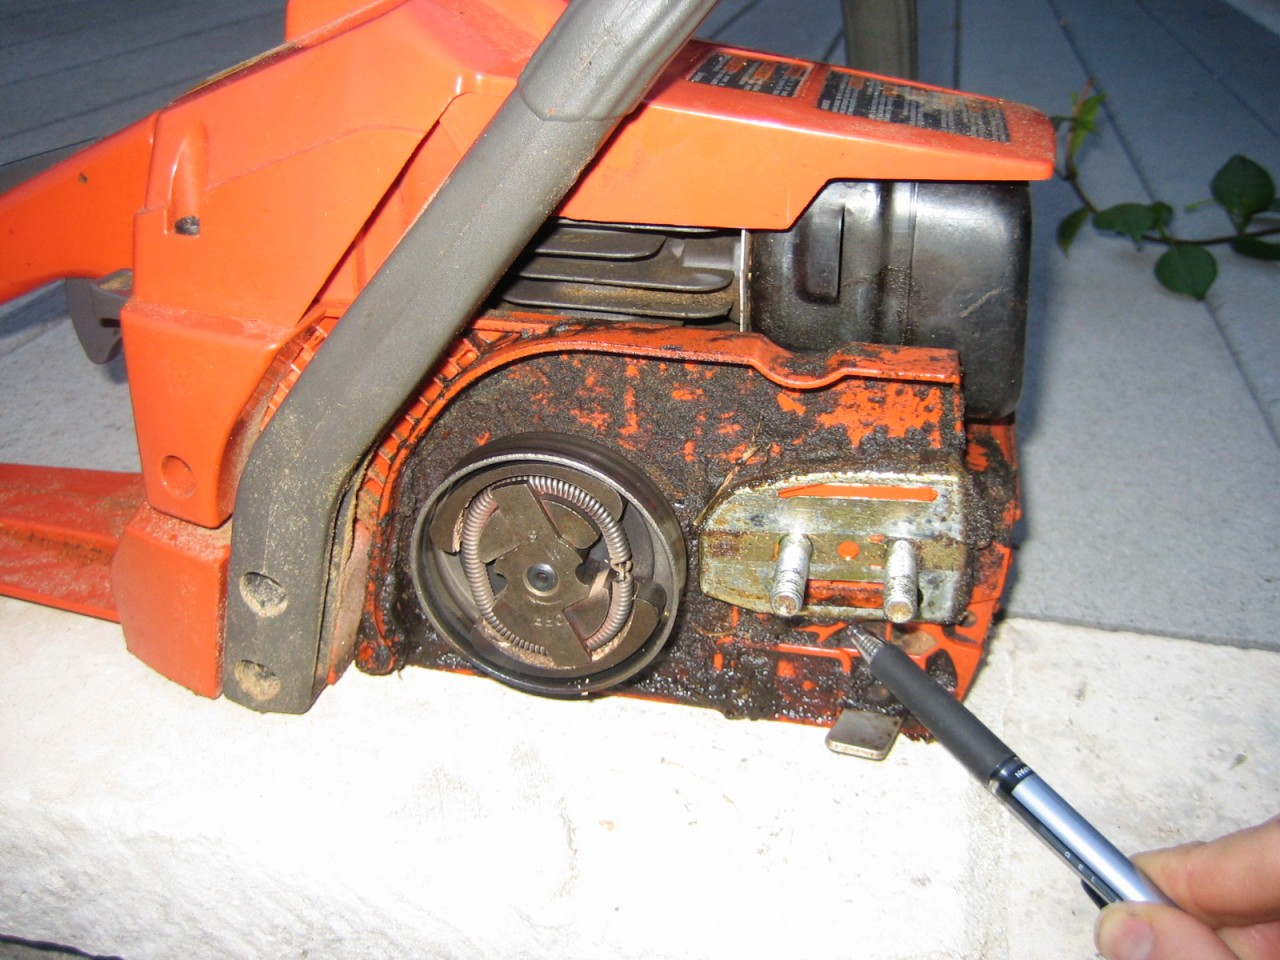 Husqvarna 141 chainsaw no oil on barchain chainsaws forum chainsaws keyboard keysfo Choice Image